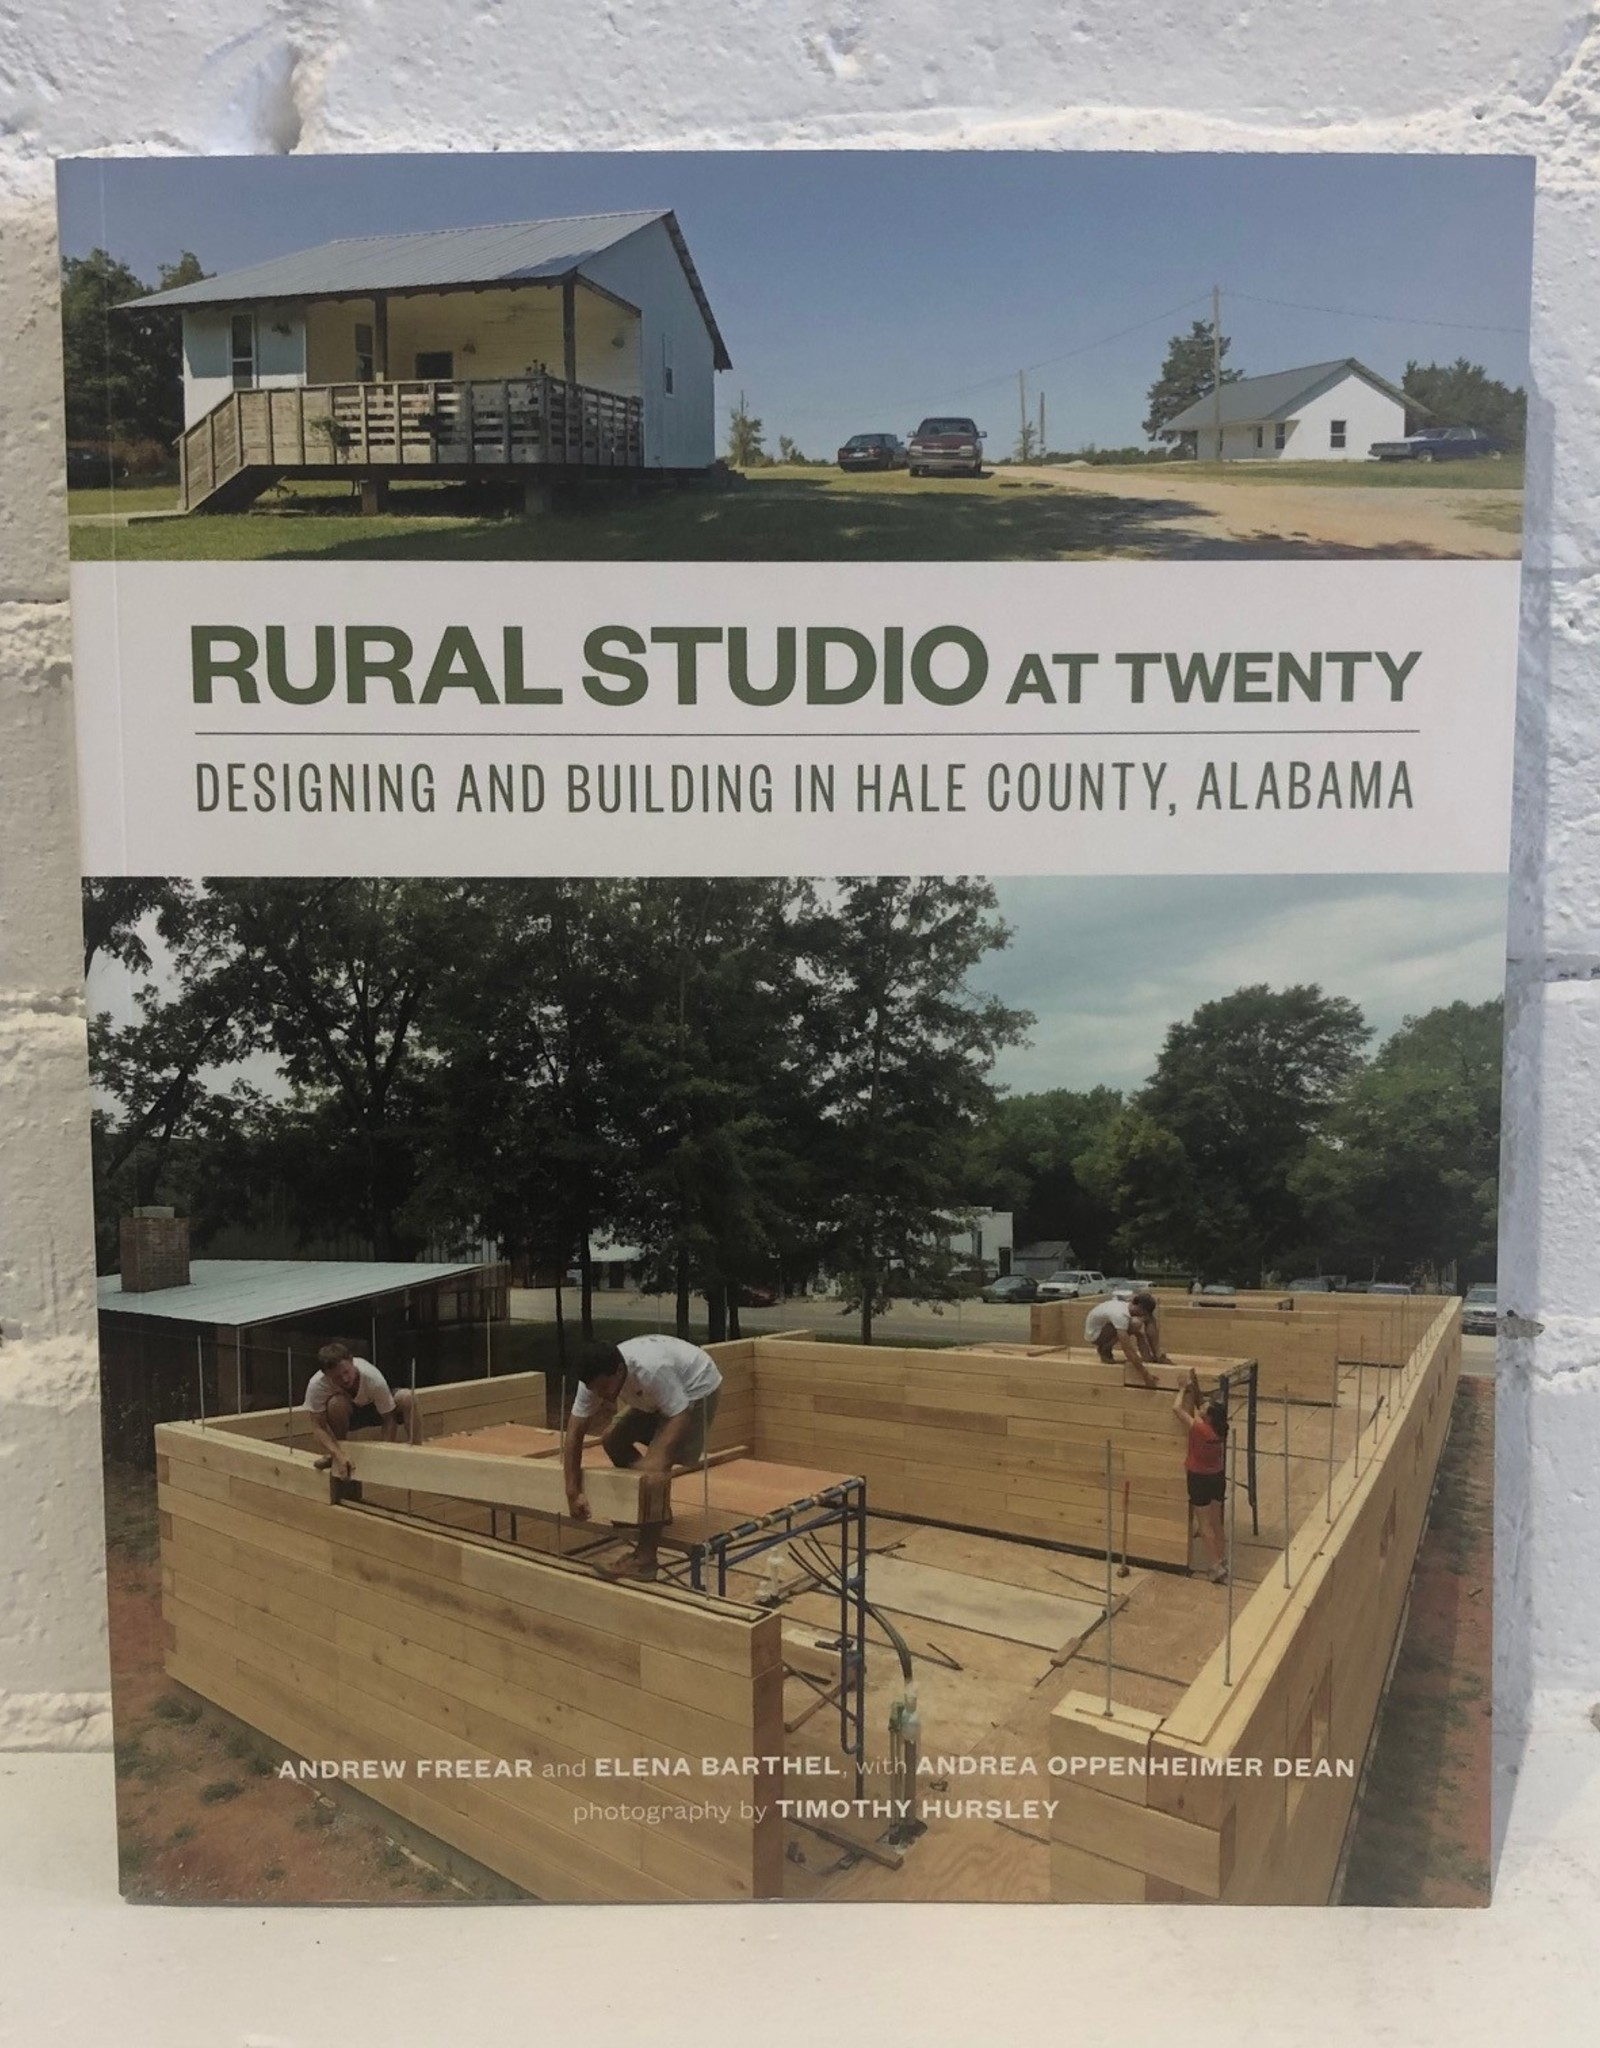 Rural Studio at Twenty: Designing and Building in Hale County, Alabama by Andrew Freear, Elena Barthel and Andrea Oppenheimer Dean